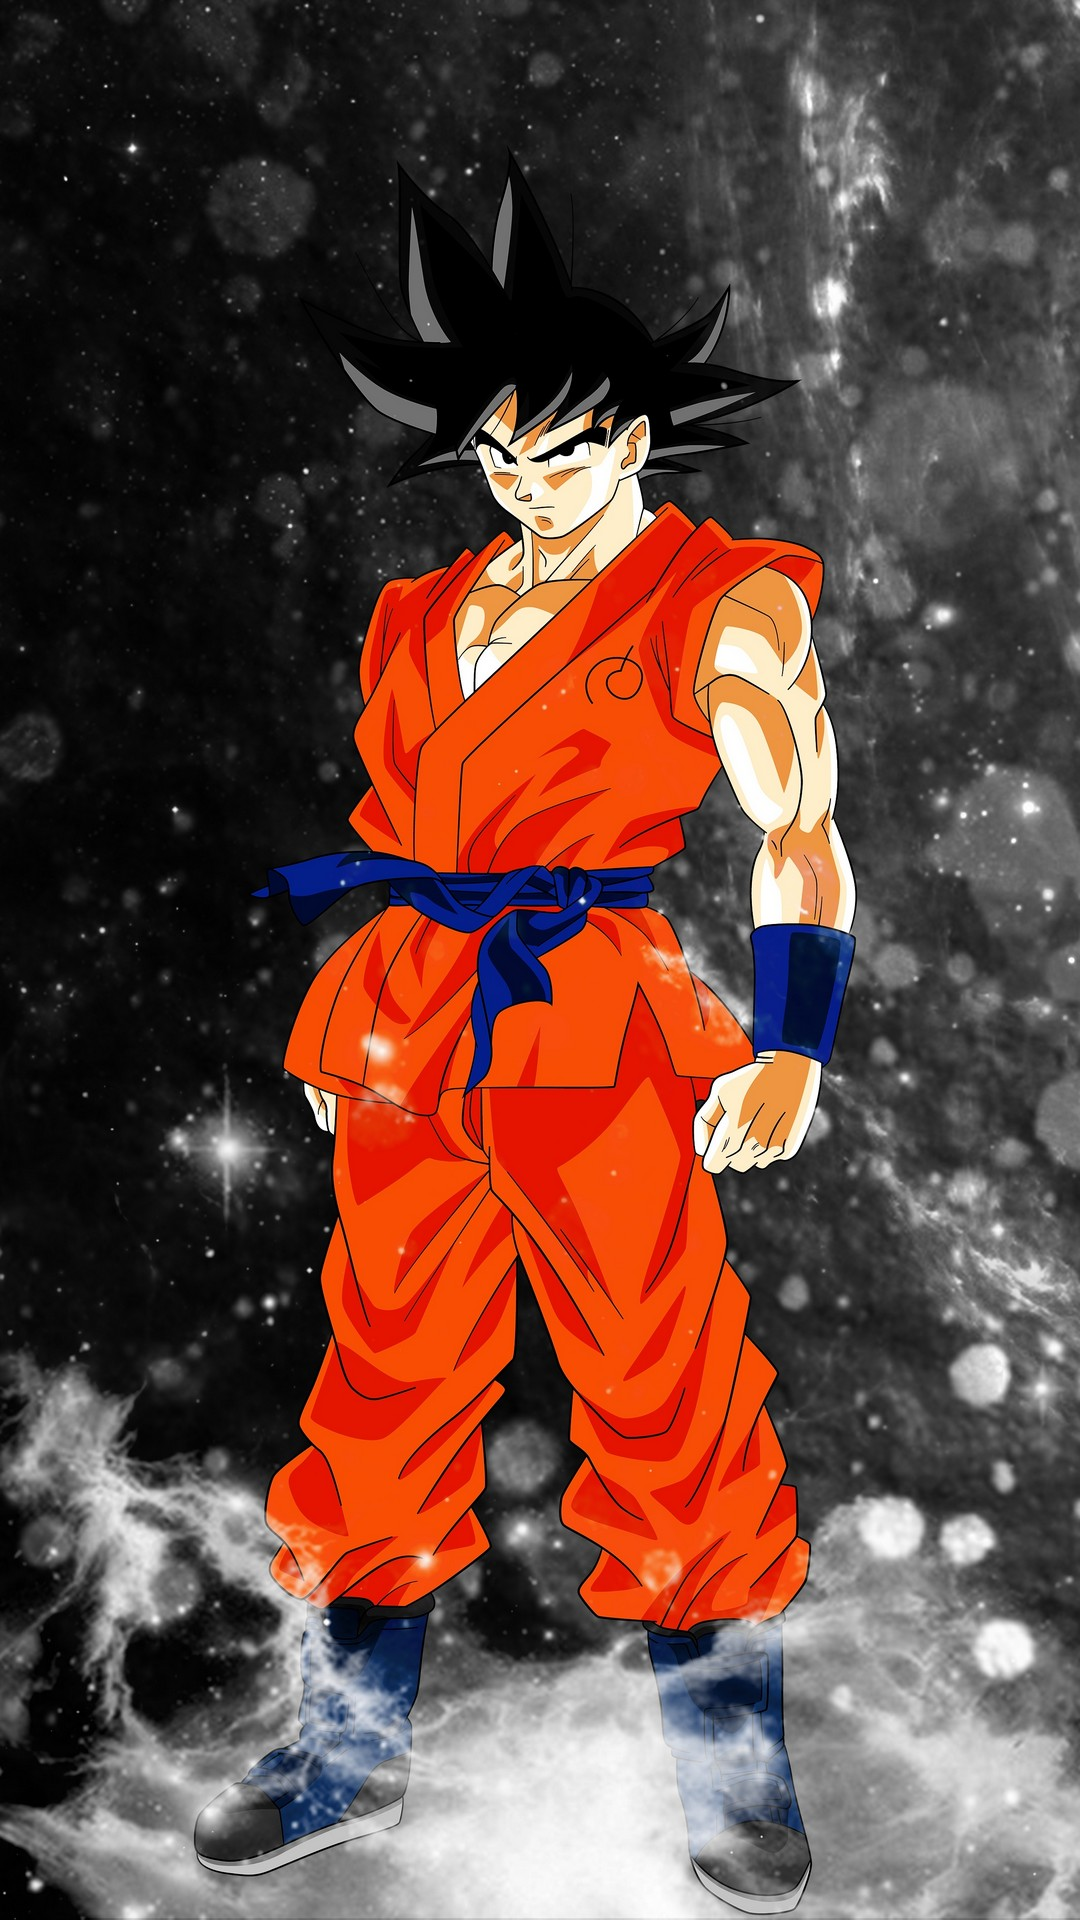 Goku Images Backgrounds For Android